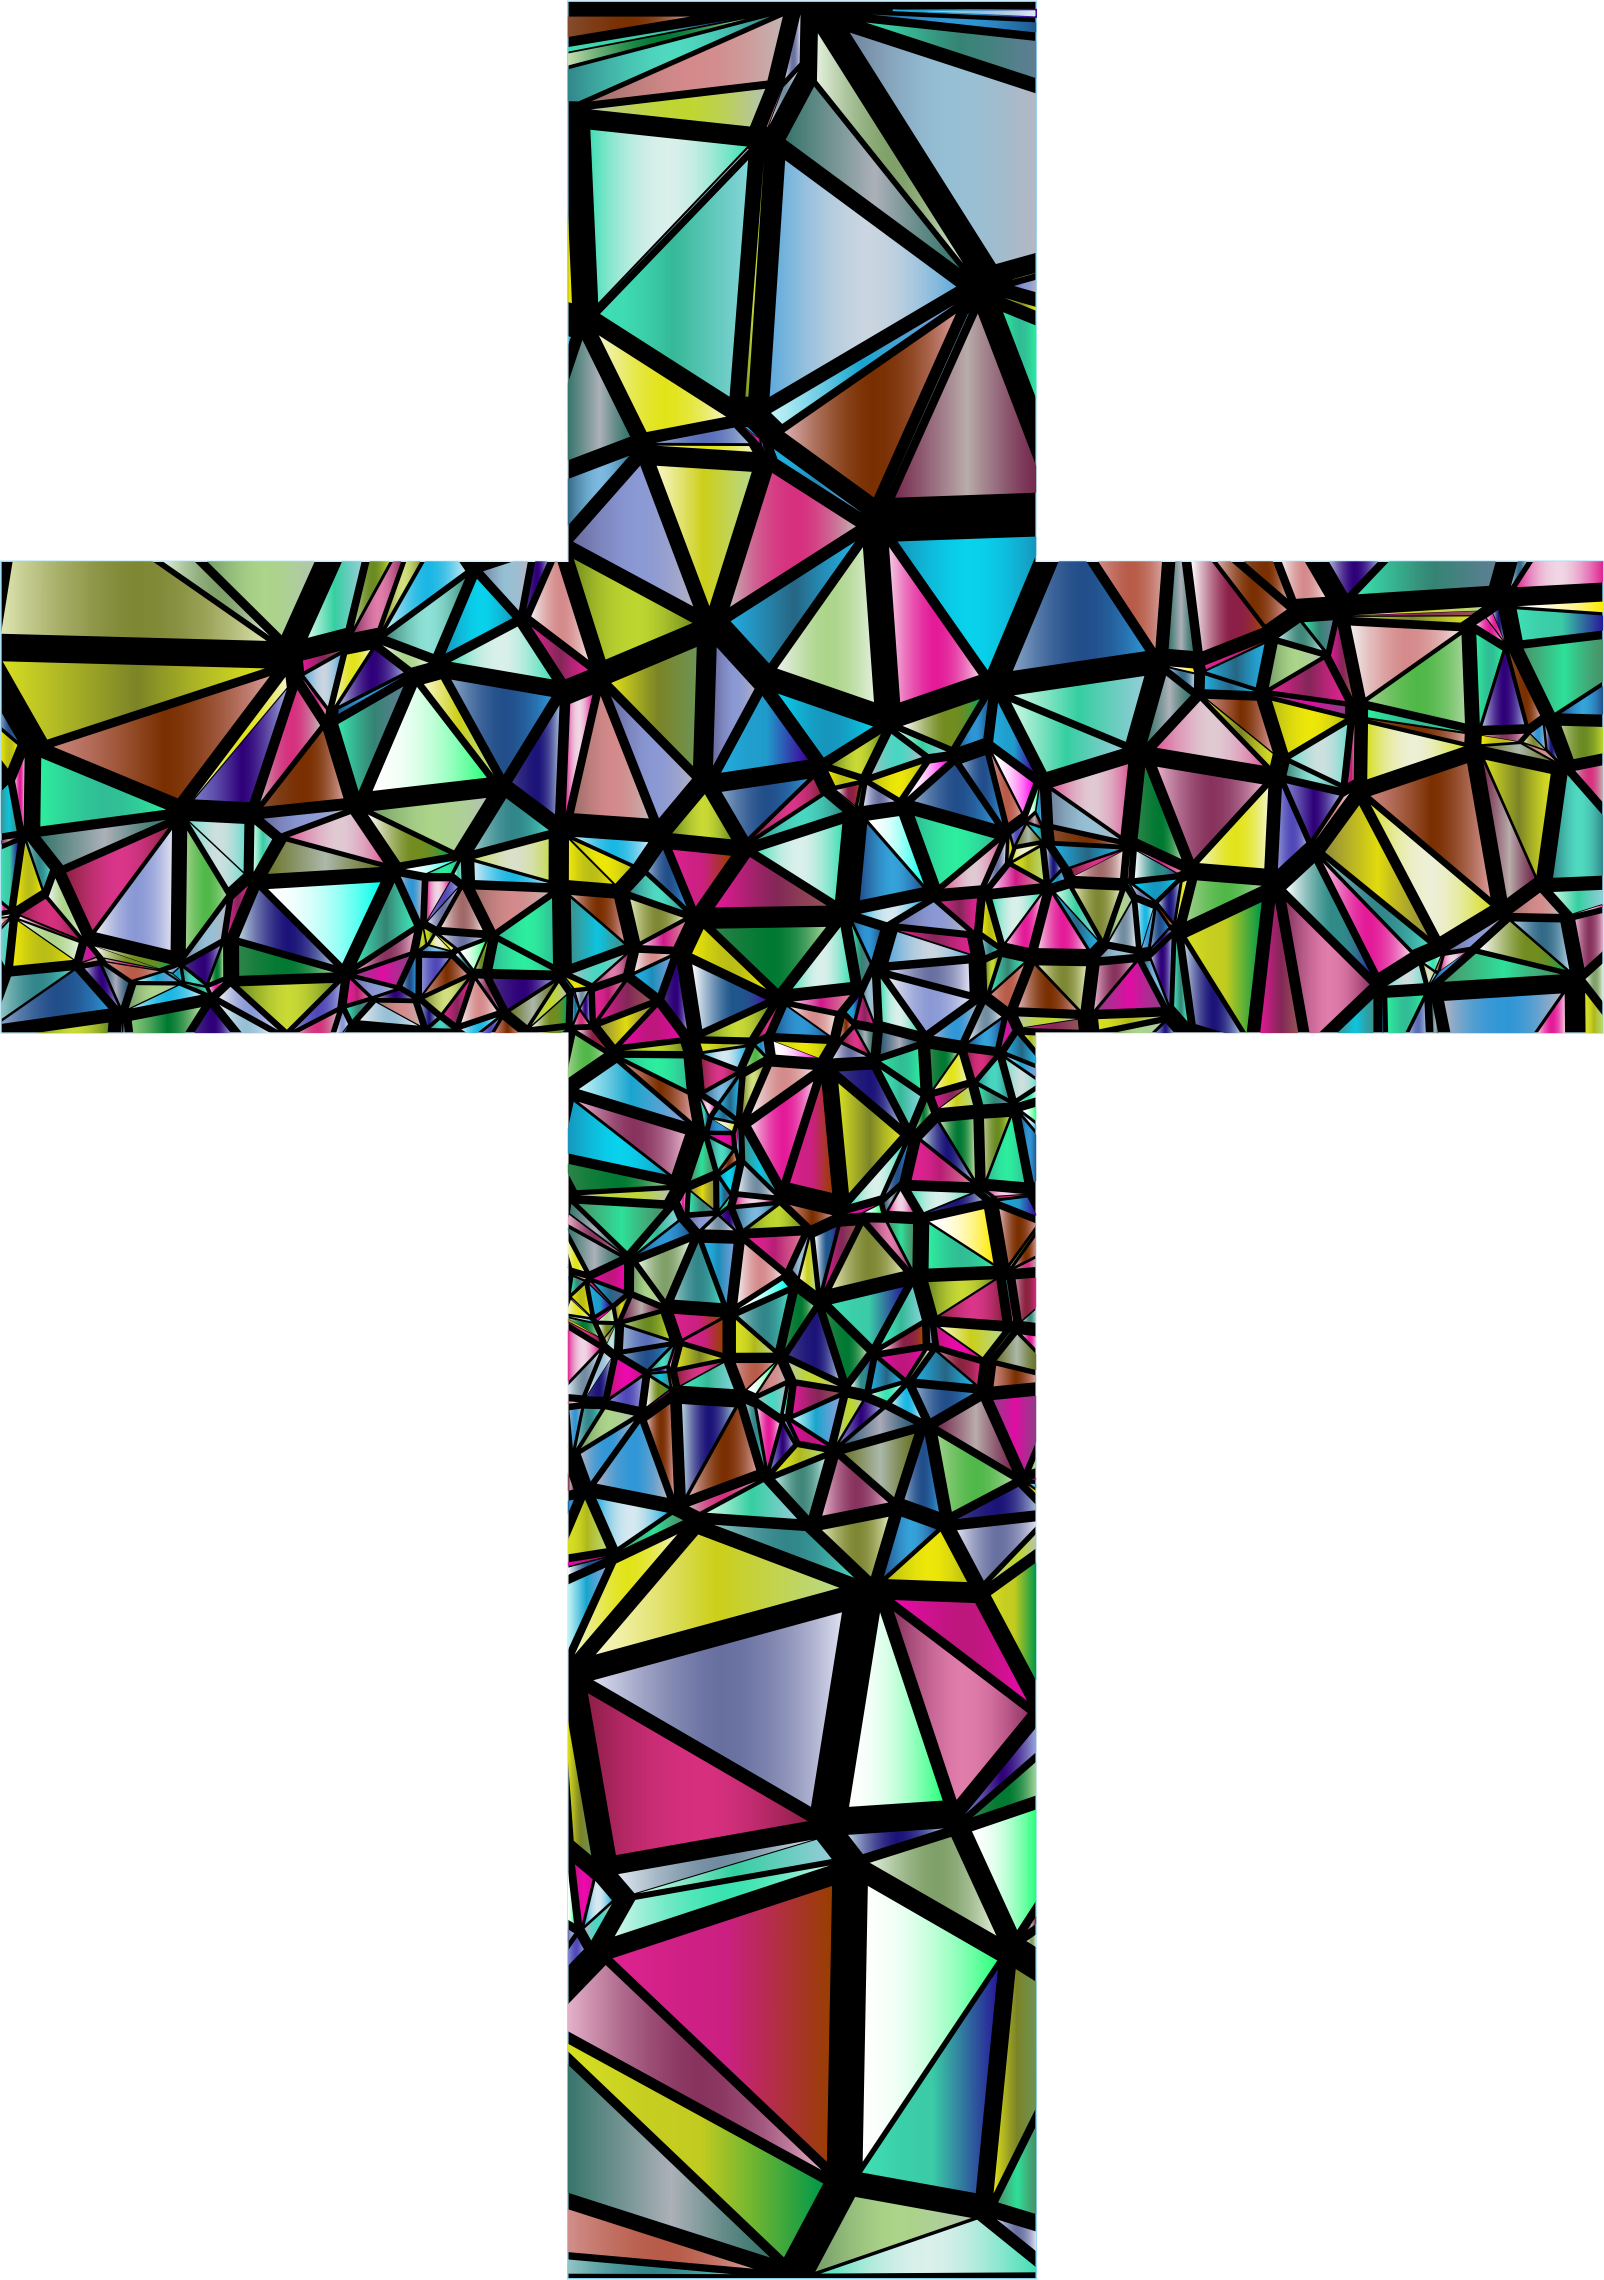 Low Poly Stained Glass Cross 3 by GDJ